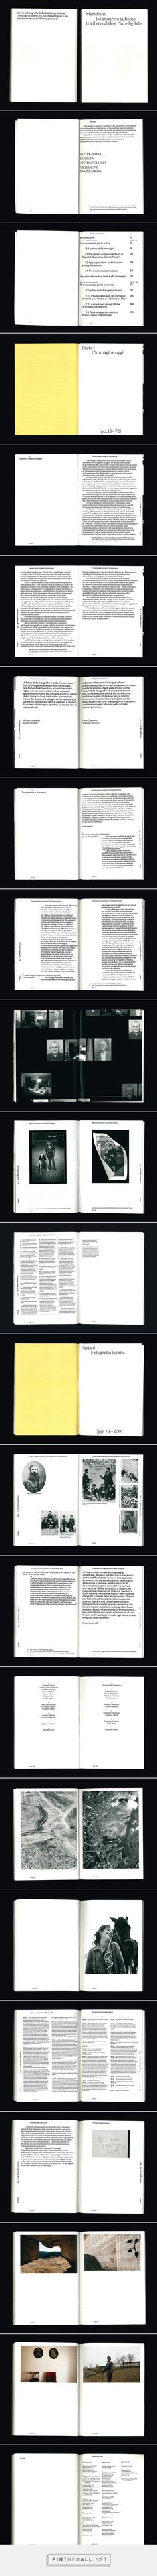 meridiano—research book on Behance... - a grouped images picture - Pin Them All